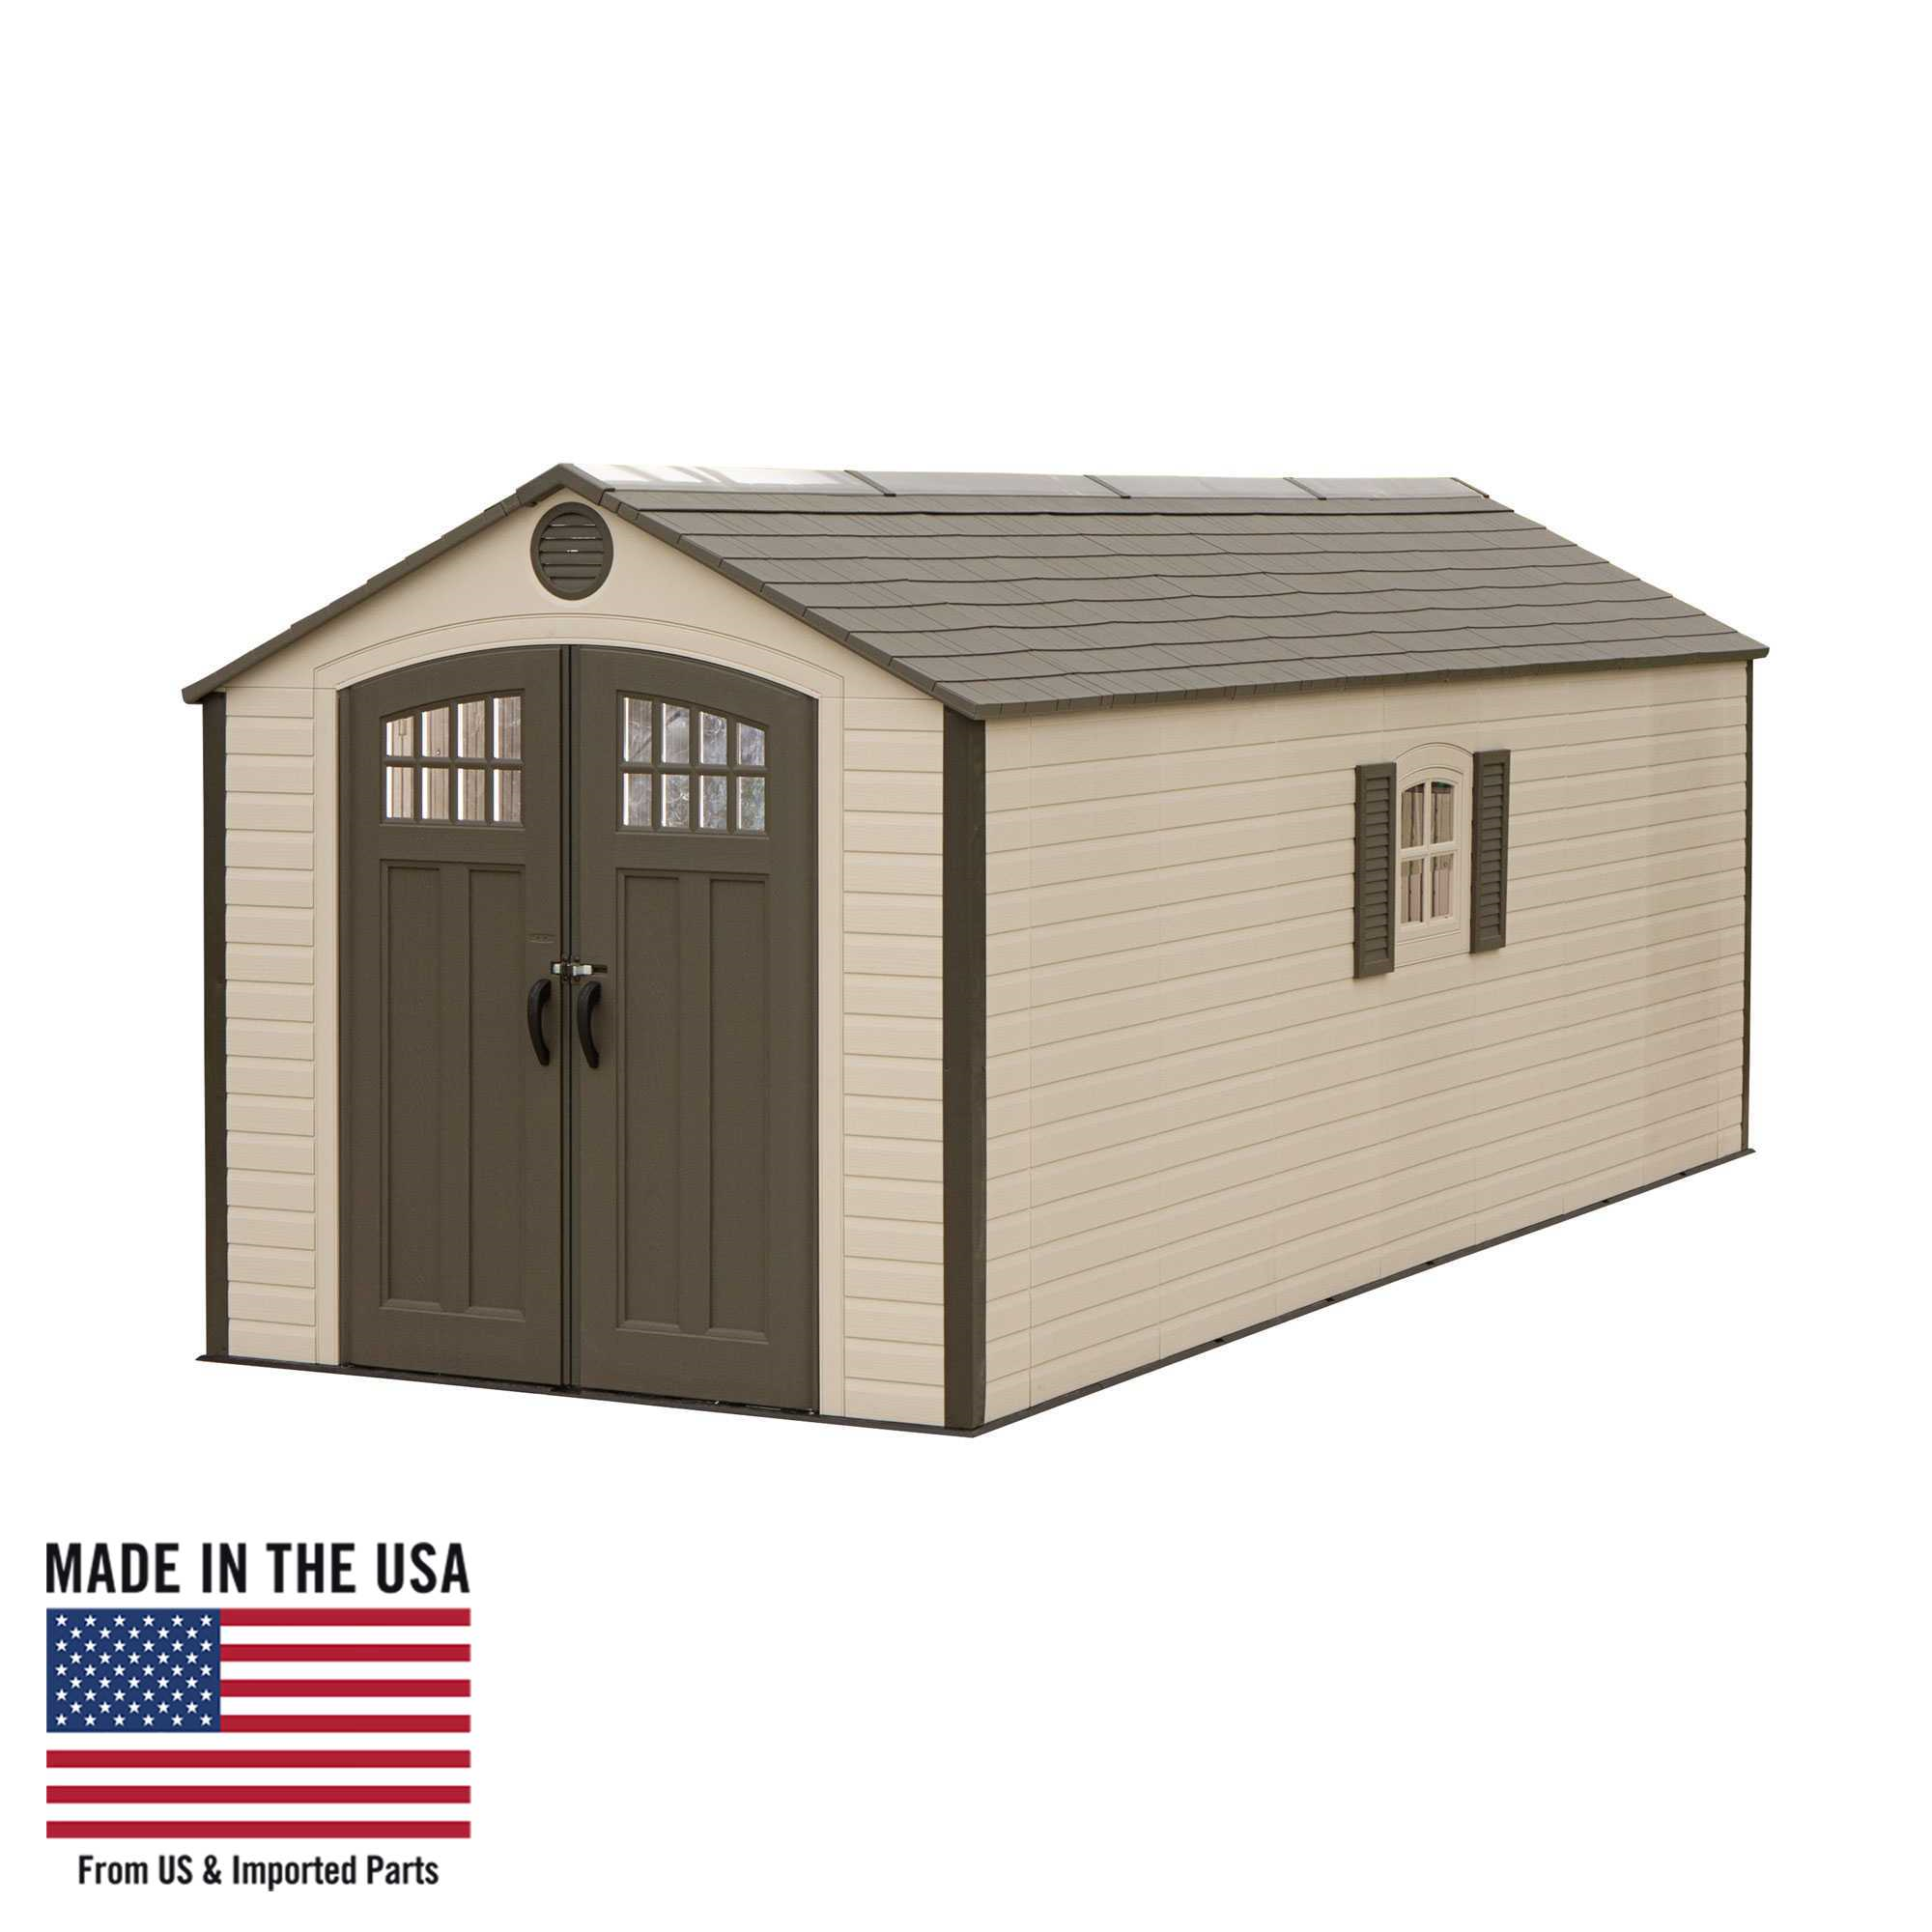 Lifetime 8 Ft. x 20 Ft. Outdoor Storage Shed